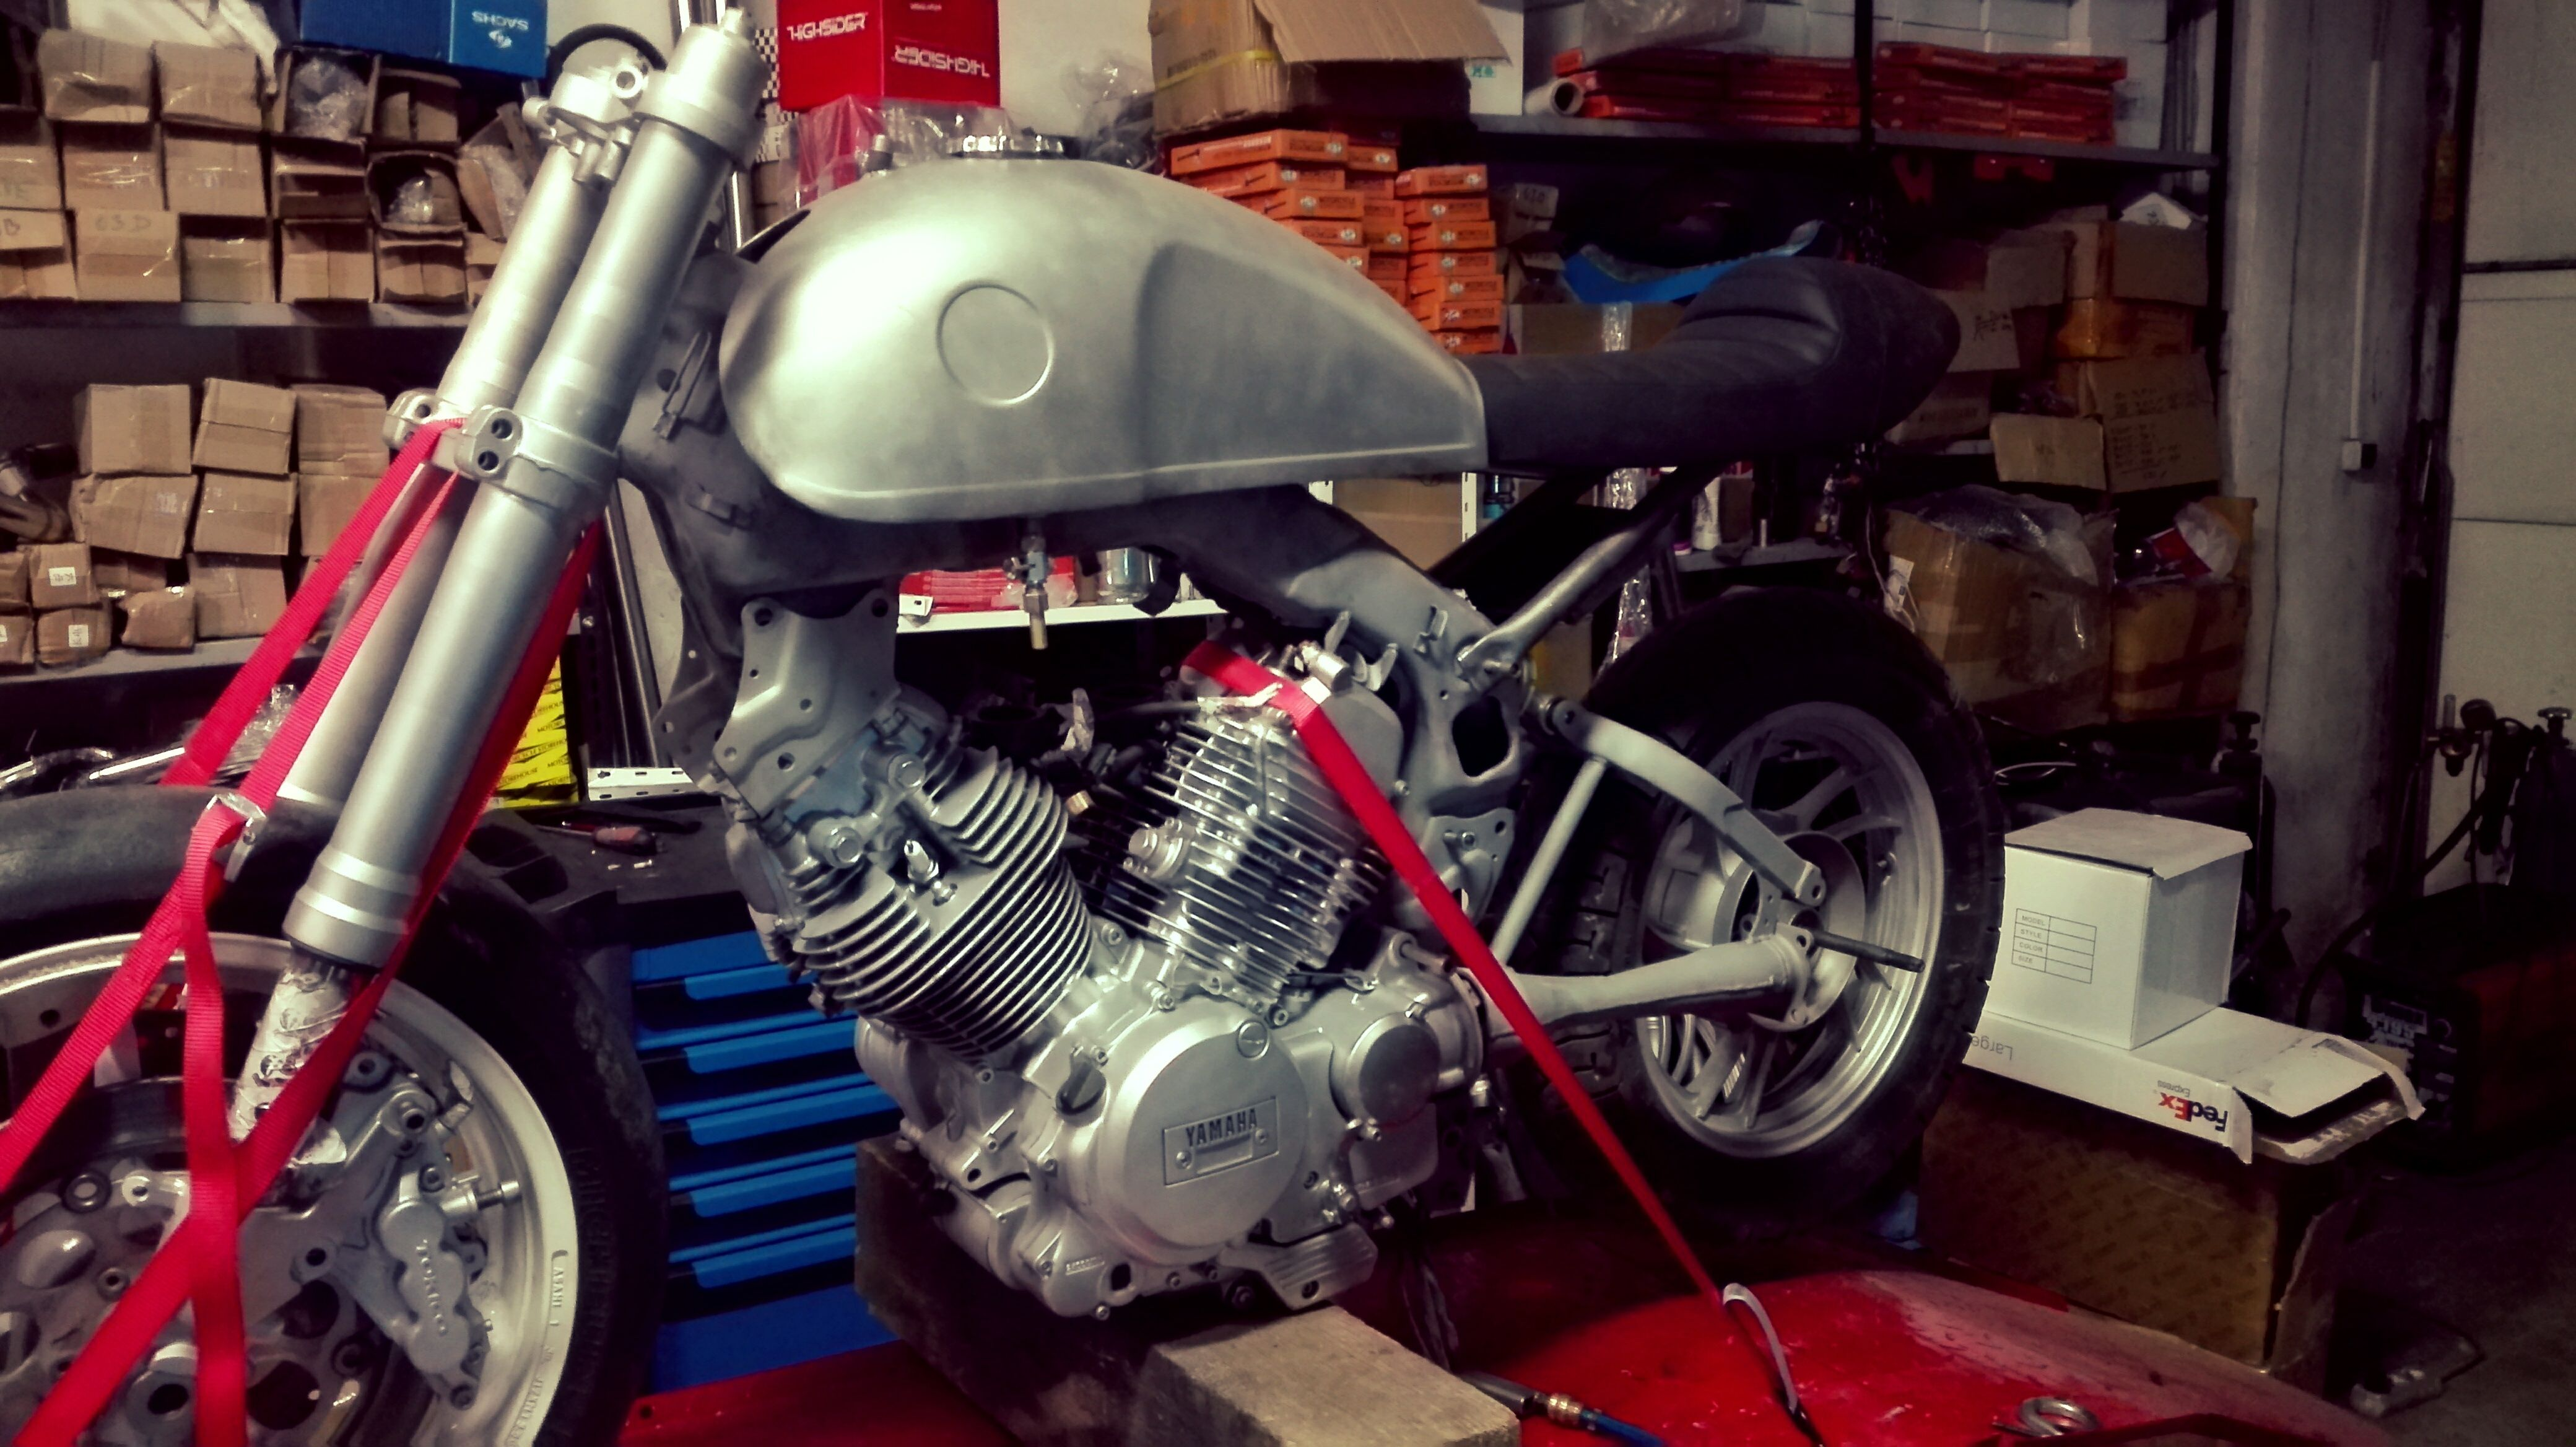 seat, benelli tank, rearsets, gsx-r front forks | yamaha xv500